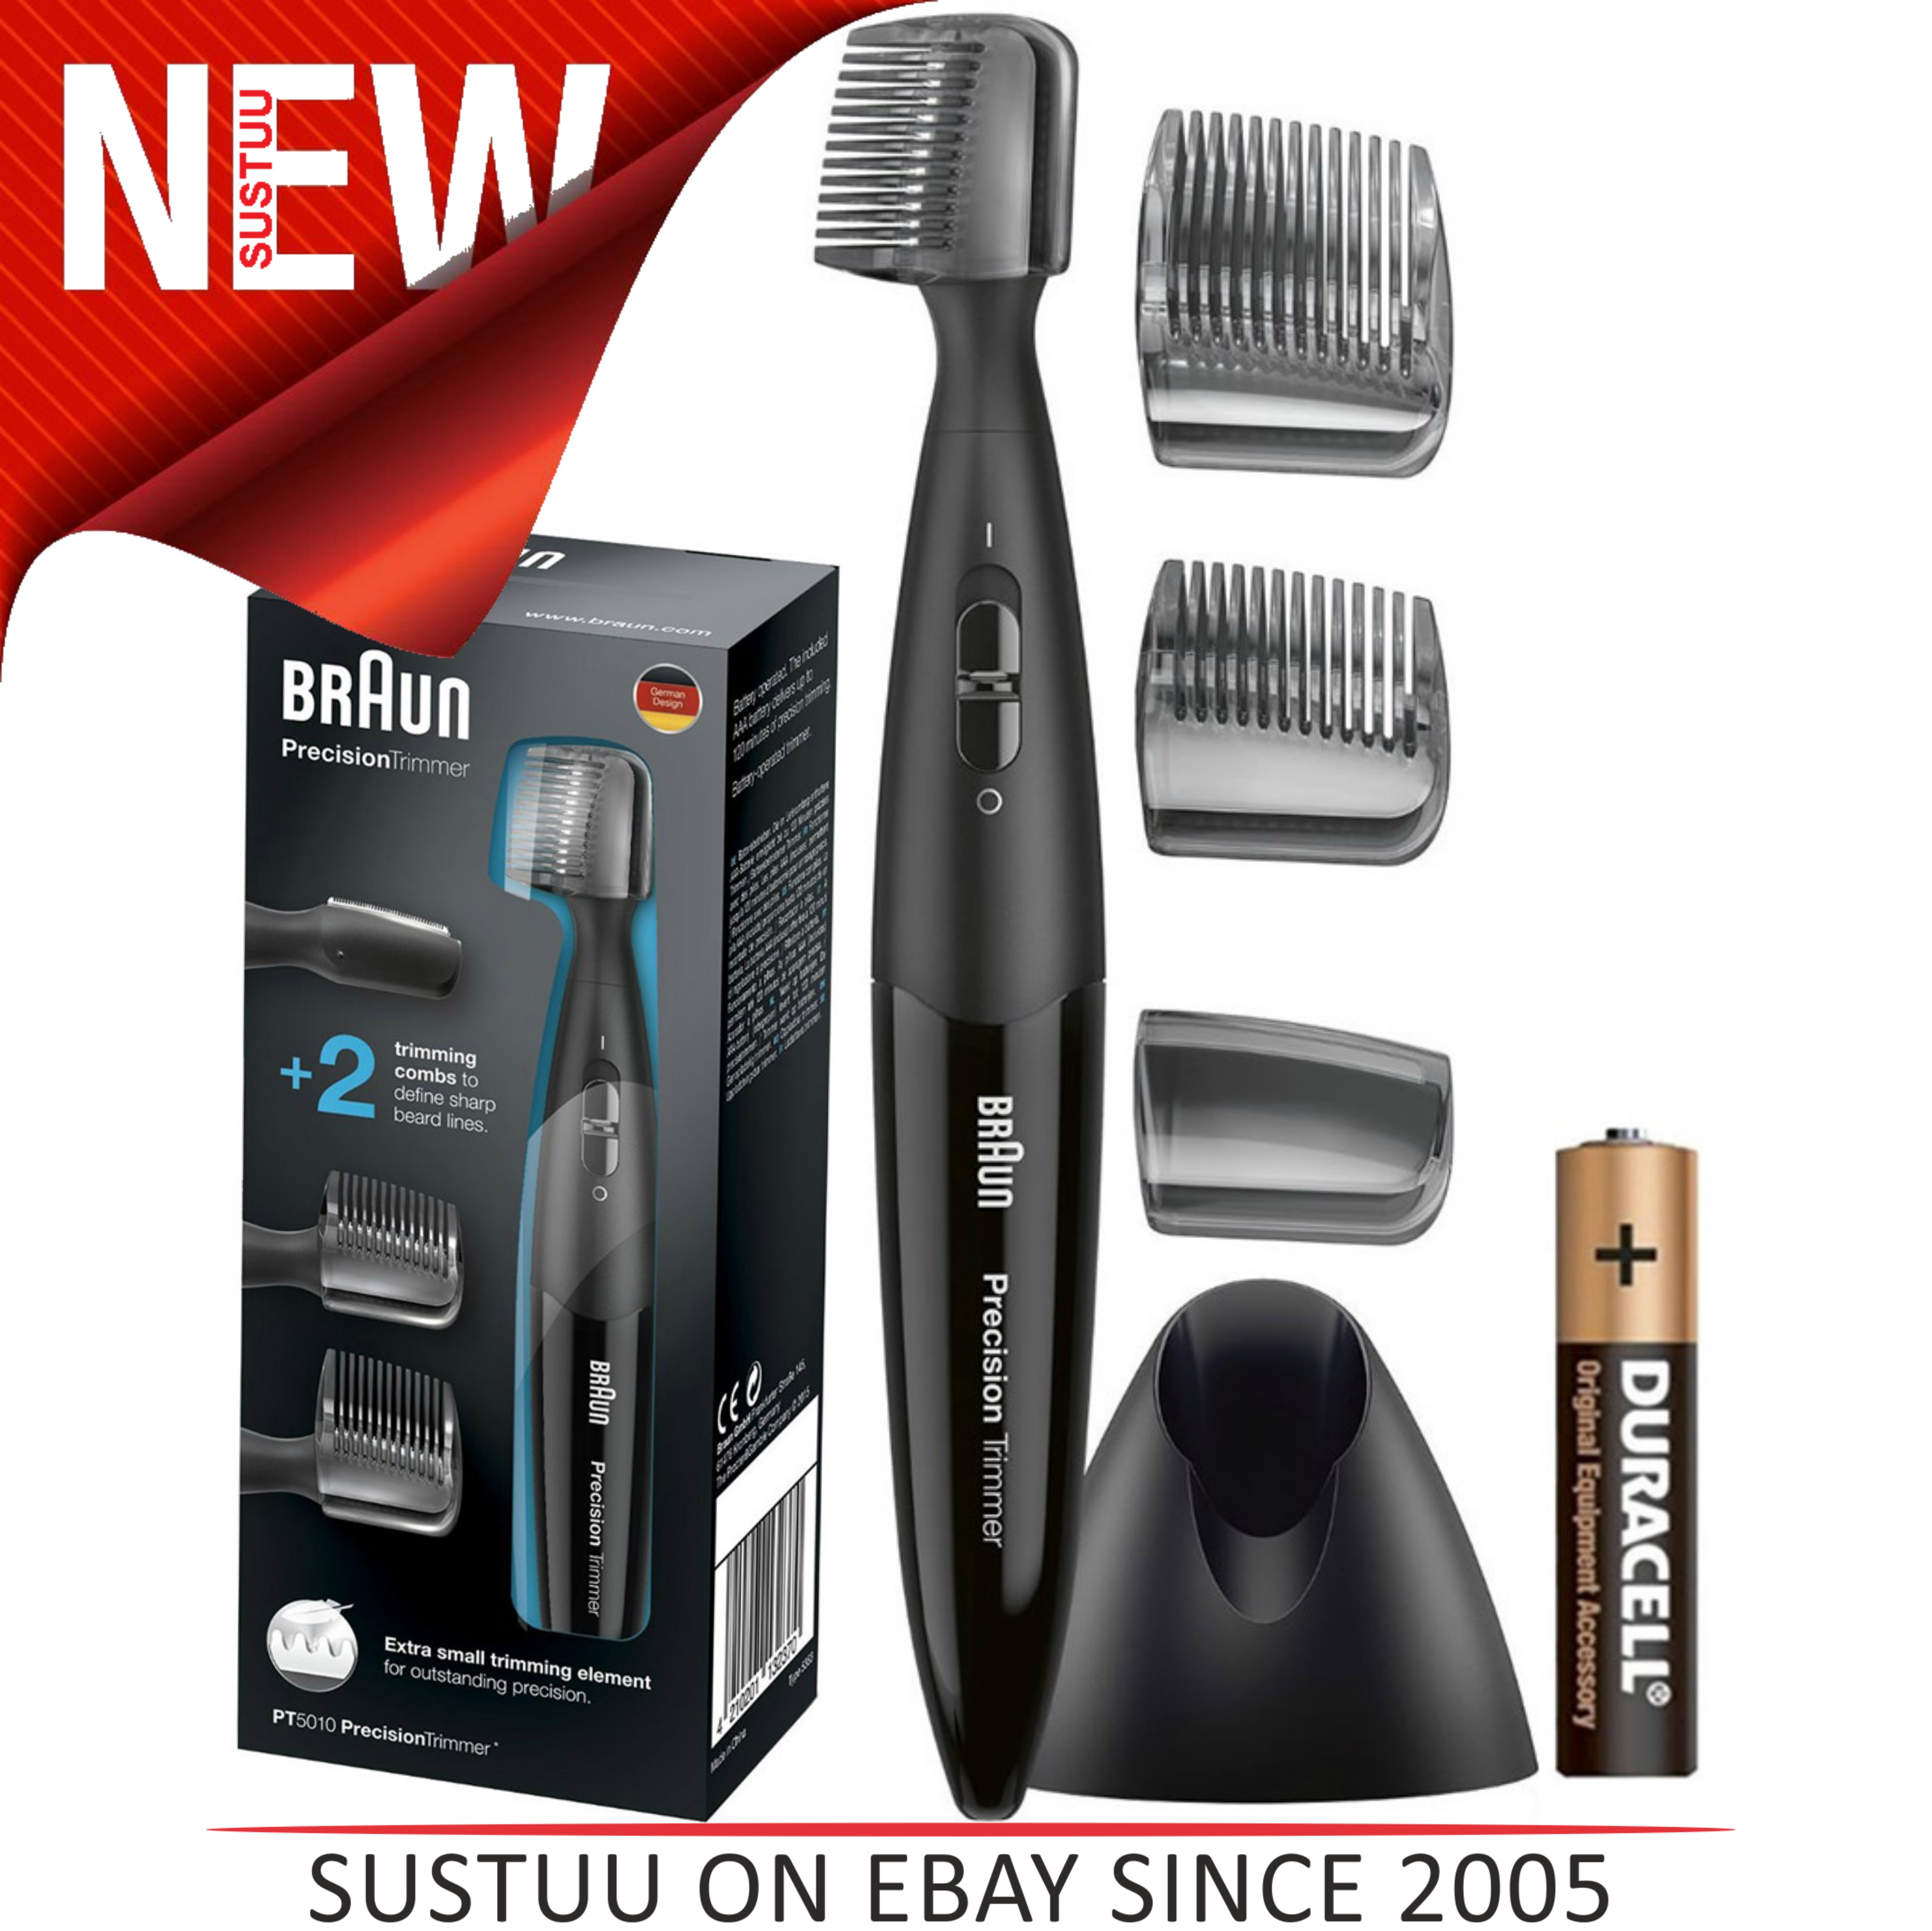 Braun|PT5010|Men's|Facial Hair|Precision|Washable Head|Trimmer 5/8mm Styler|NEW